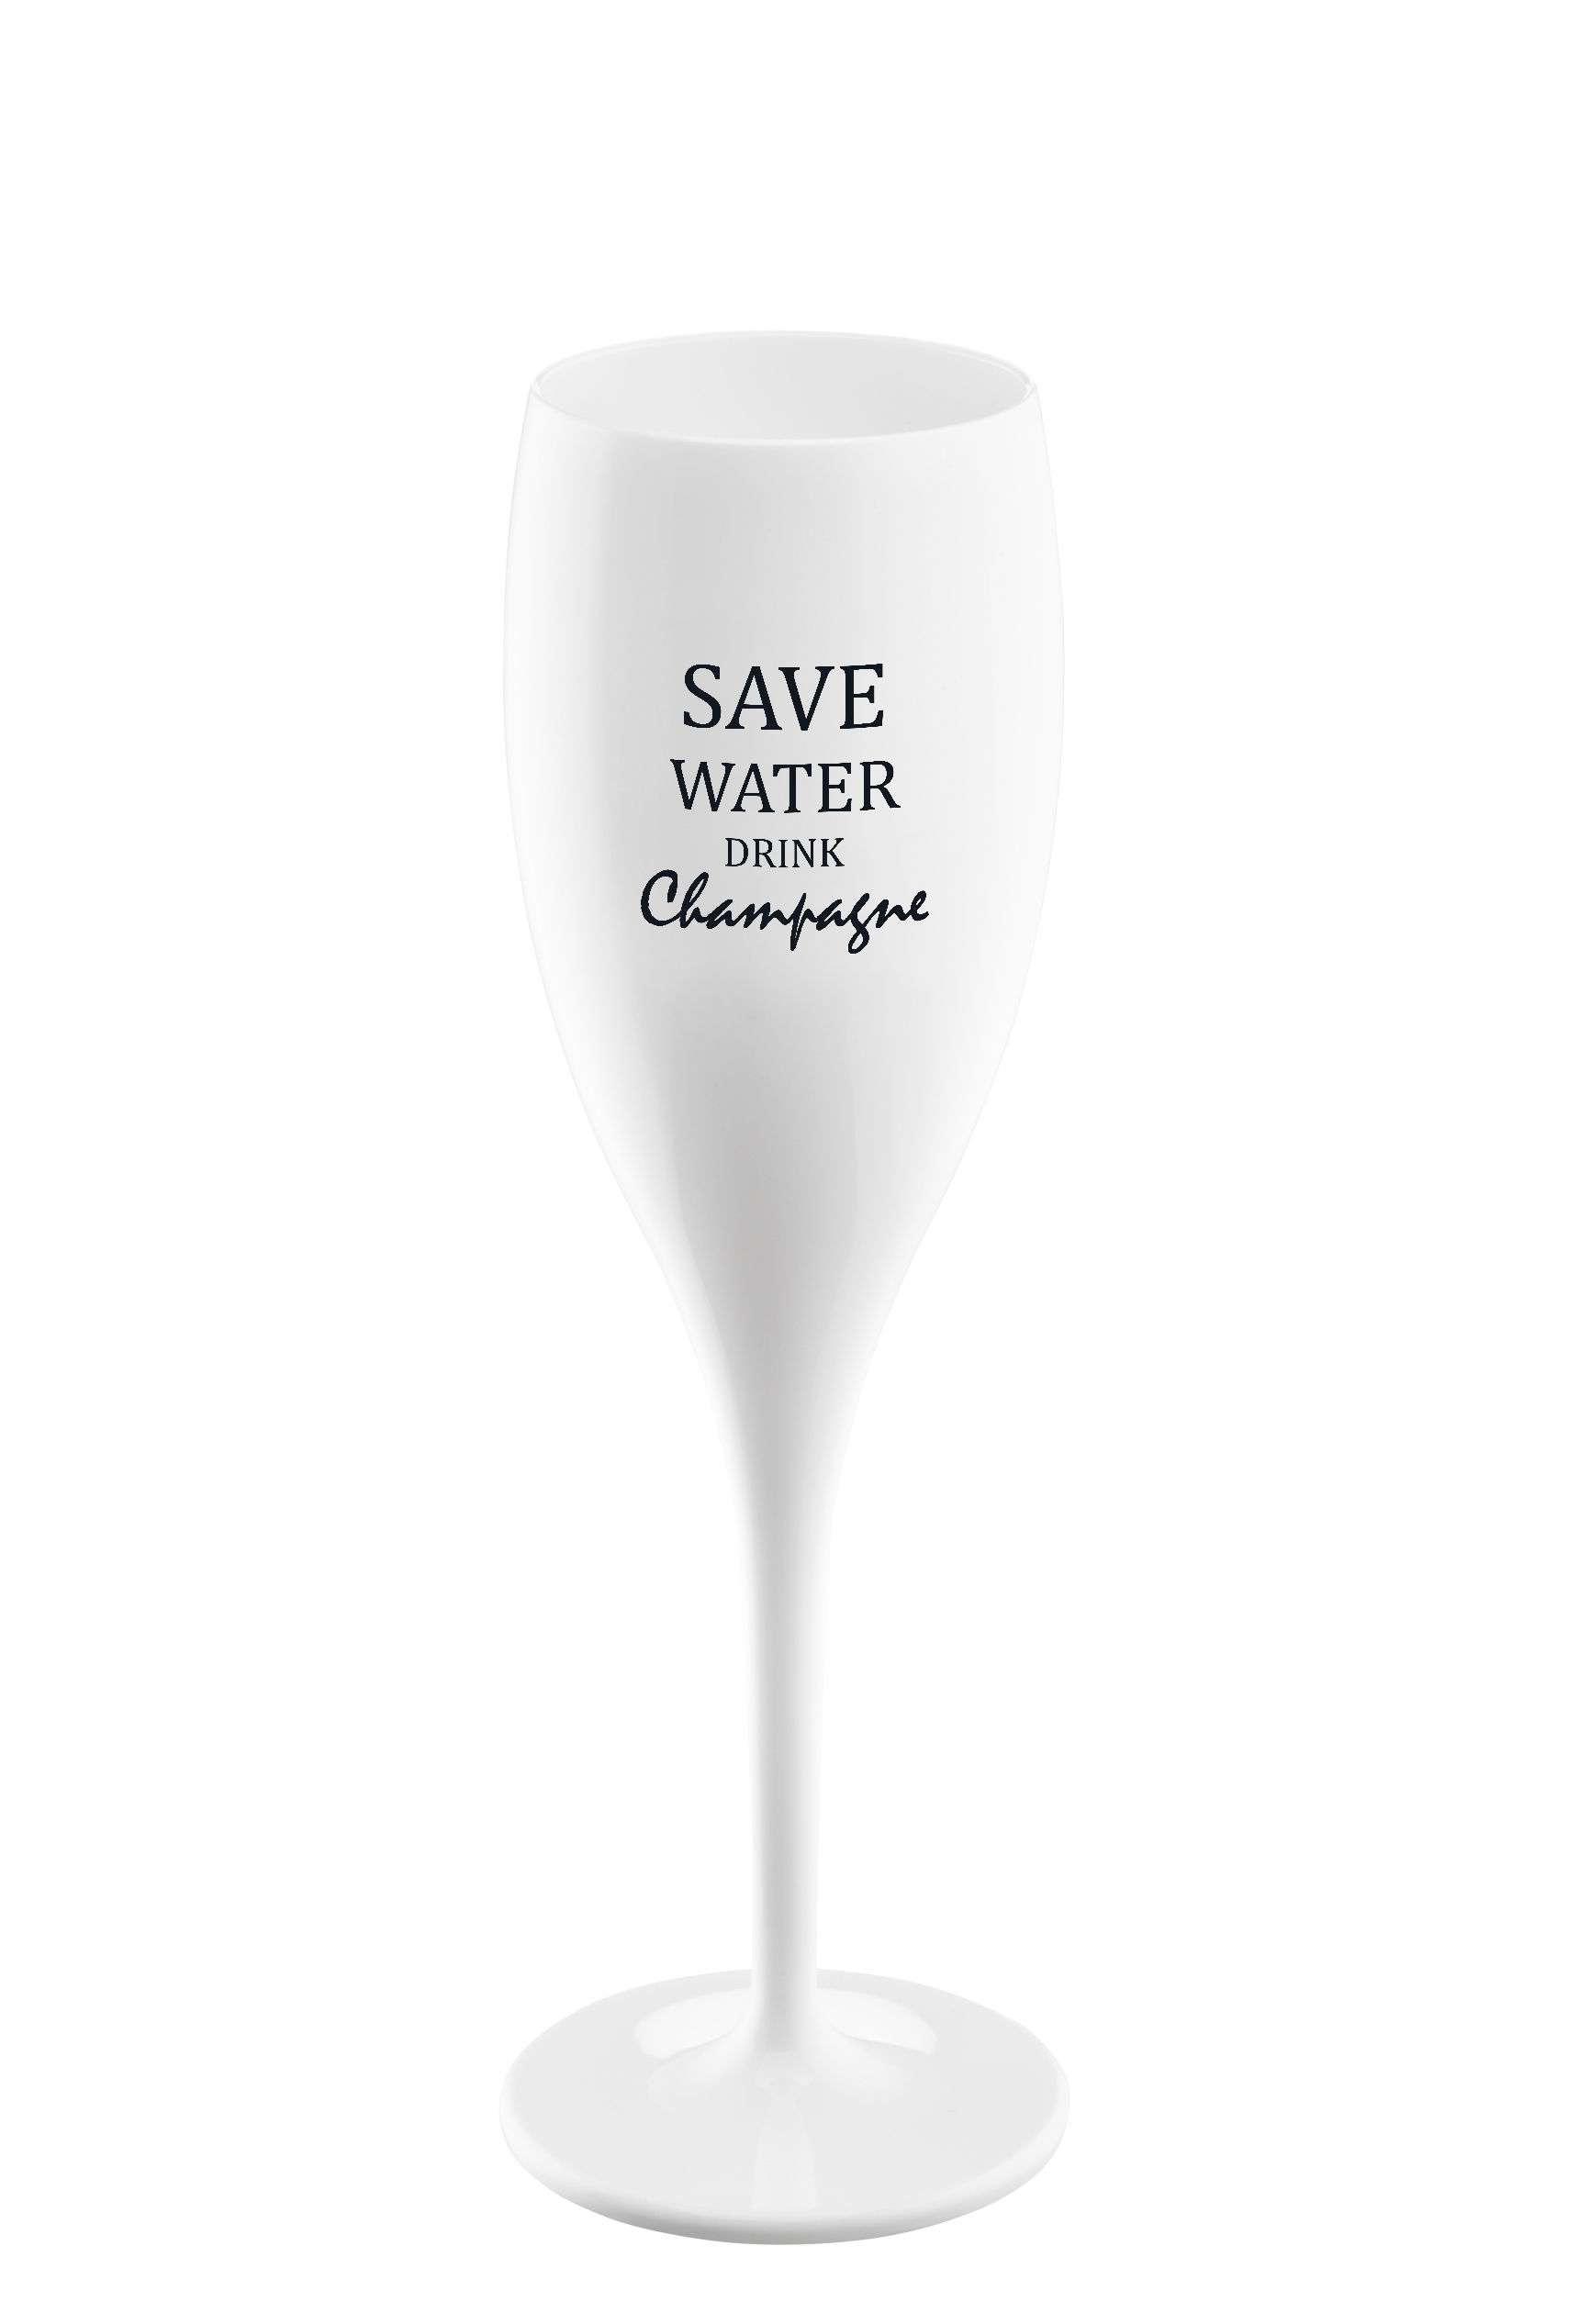 Arts de la table - Verres  - Flûte à champagne Cheers / Plastique - Save water - Koziol - Save water - Plastique Superglas